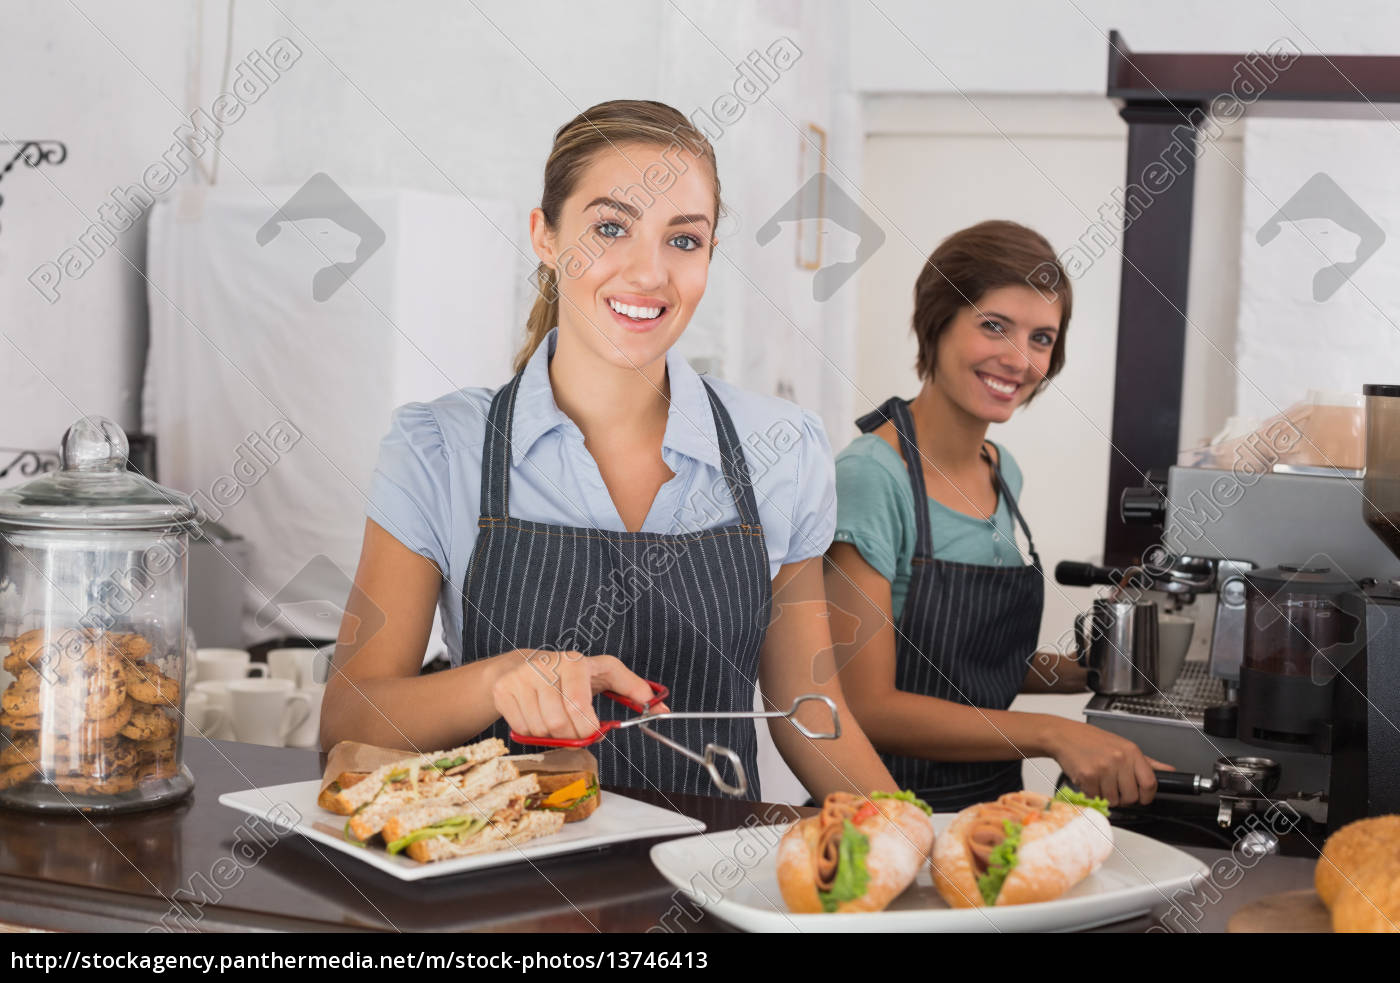 pretty, waitresses, working, with, a, smile - 13746413